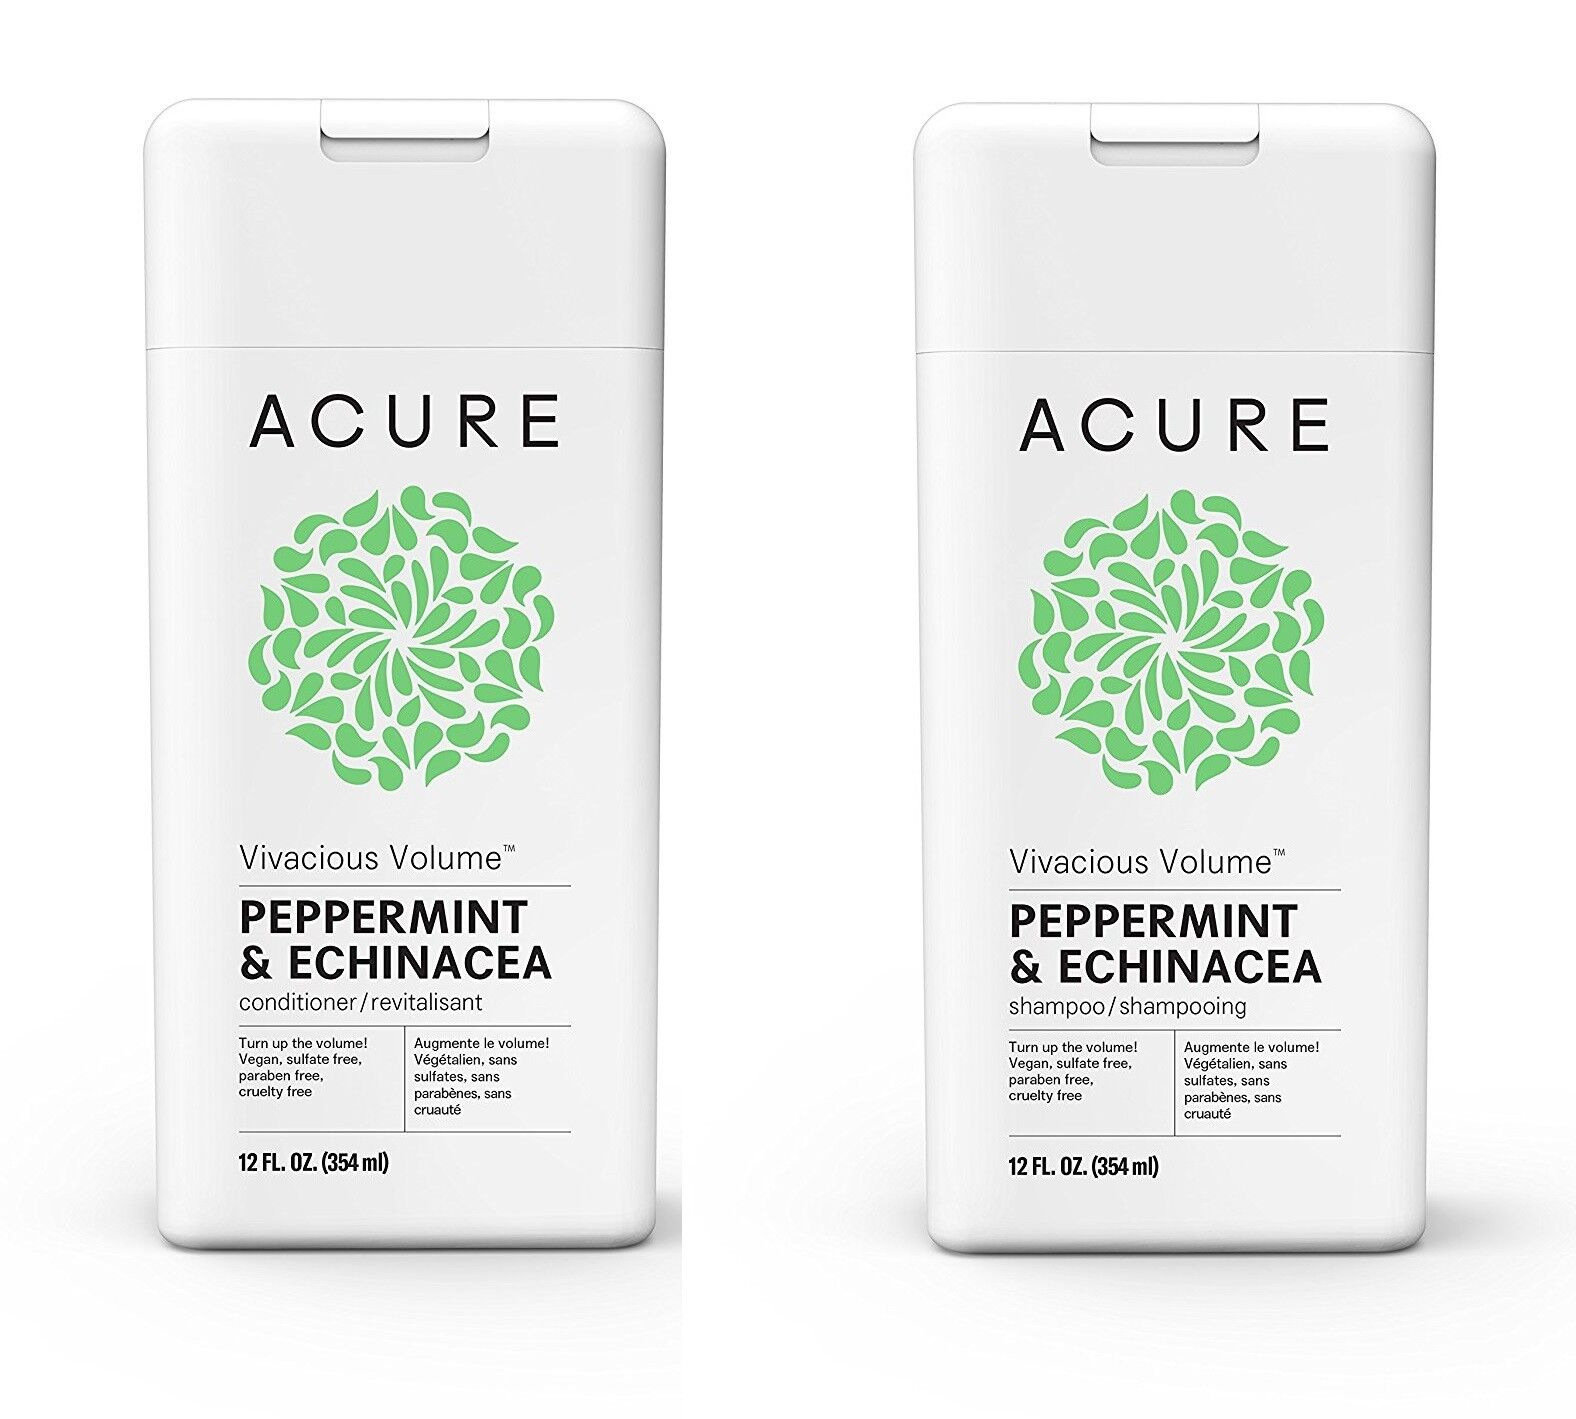 Acure Vivacious Volume Peppermint Shampoo And Conditioner